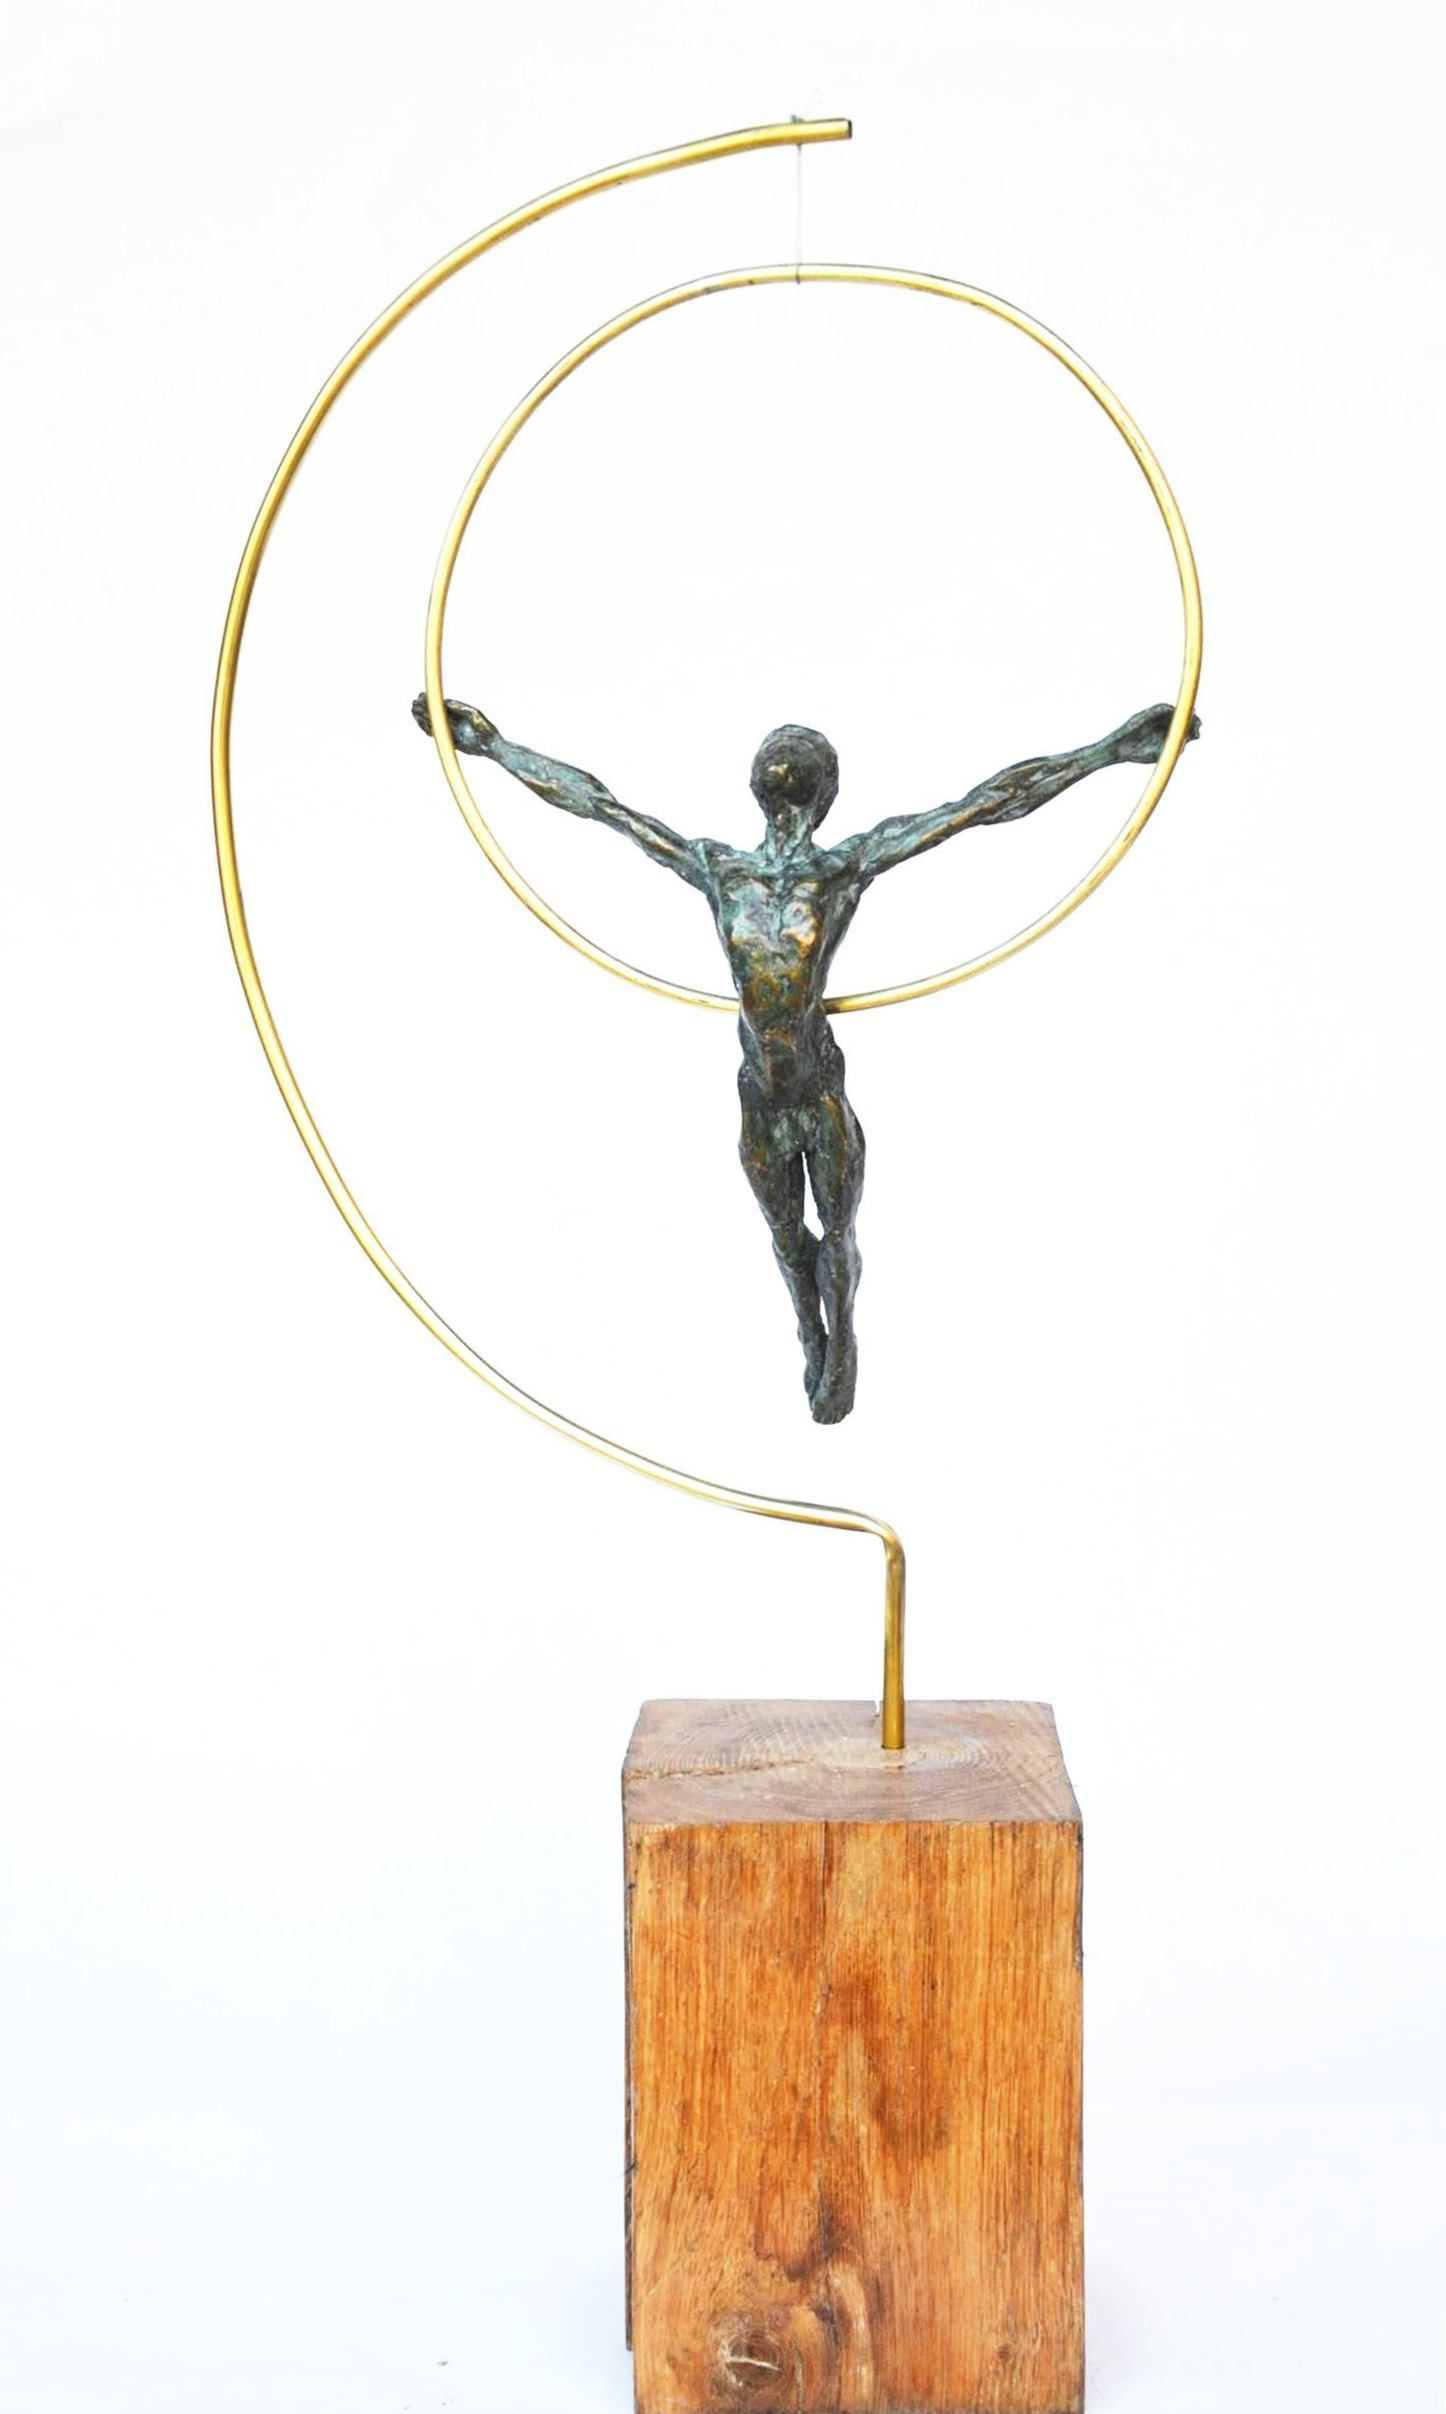 Dancer with a hoop,Yann Guillon,Sculpture